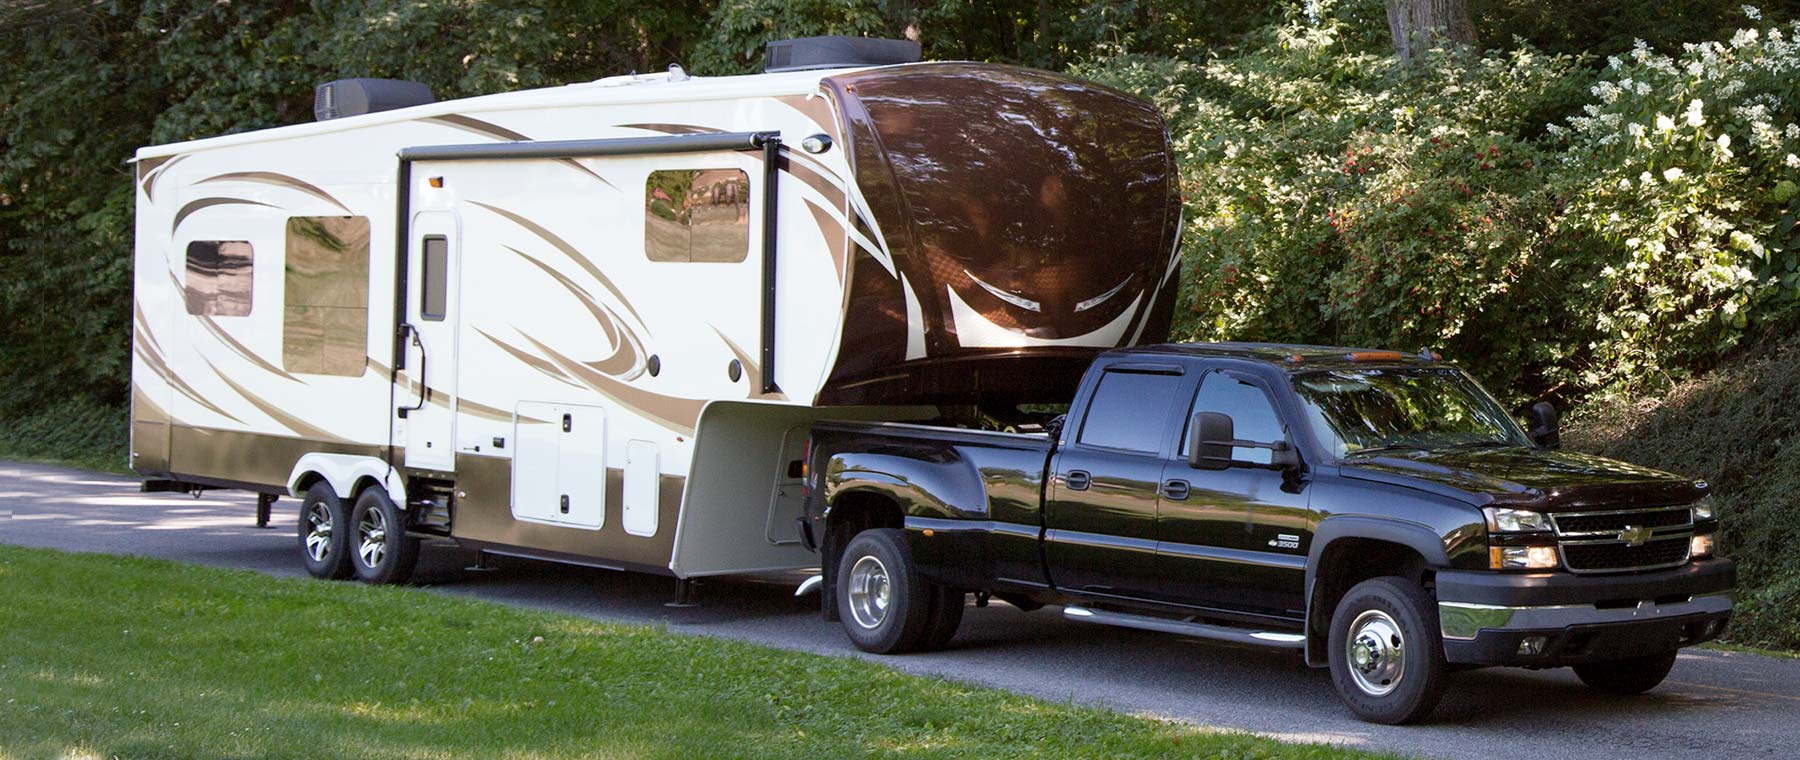 What Is A Fifth Wheel >> Fifth Wheel Trailer Fifth Wheels